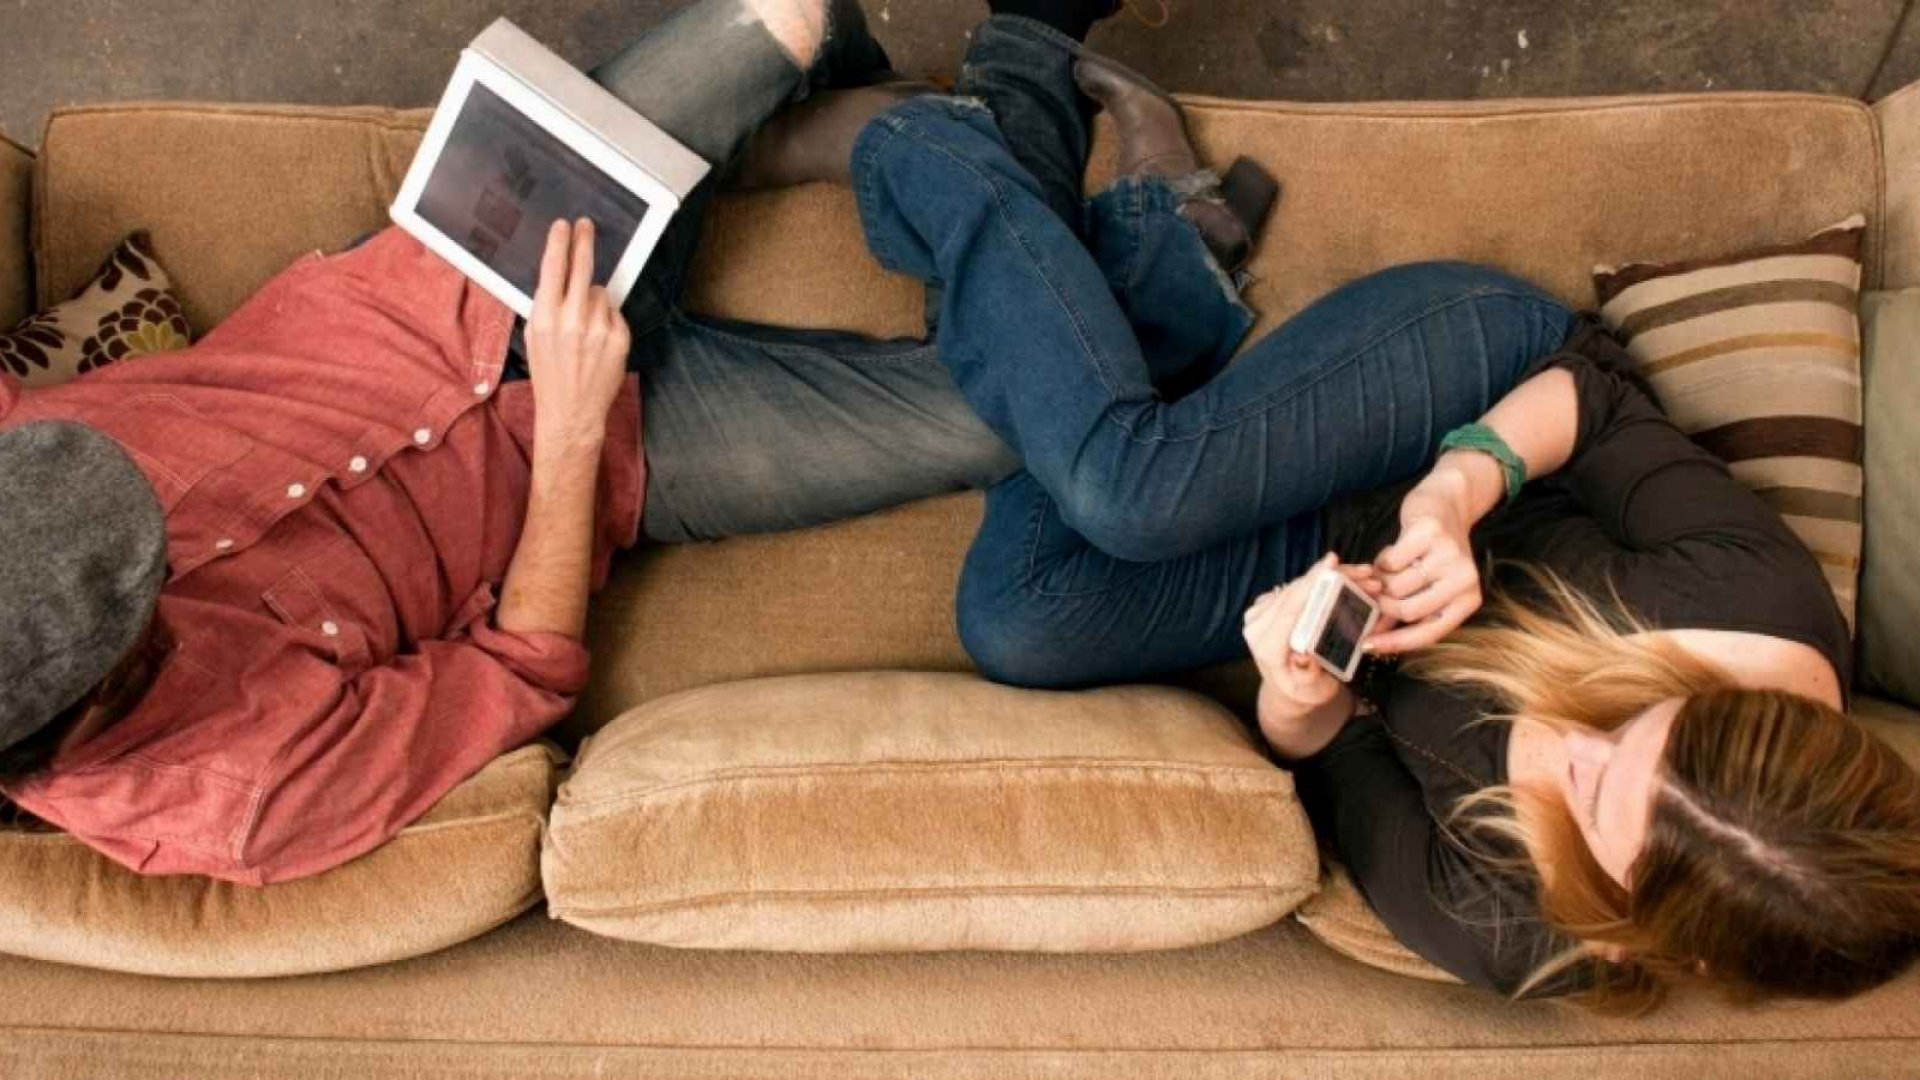 Yet More Evidence Your Phone Is Ruining Your Relationships